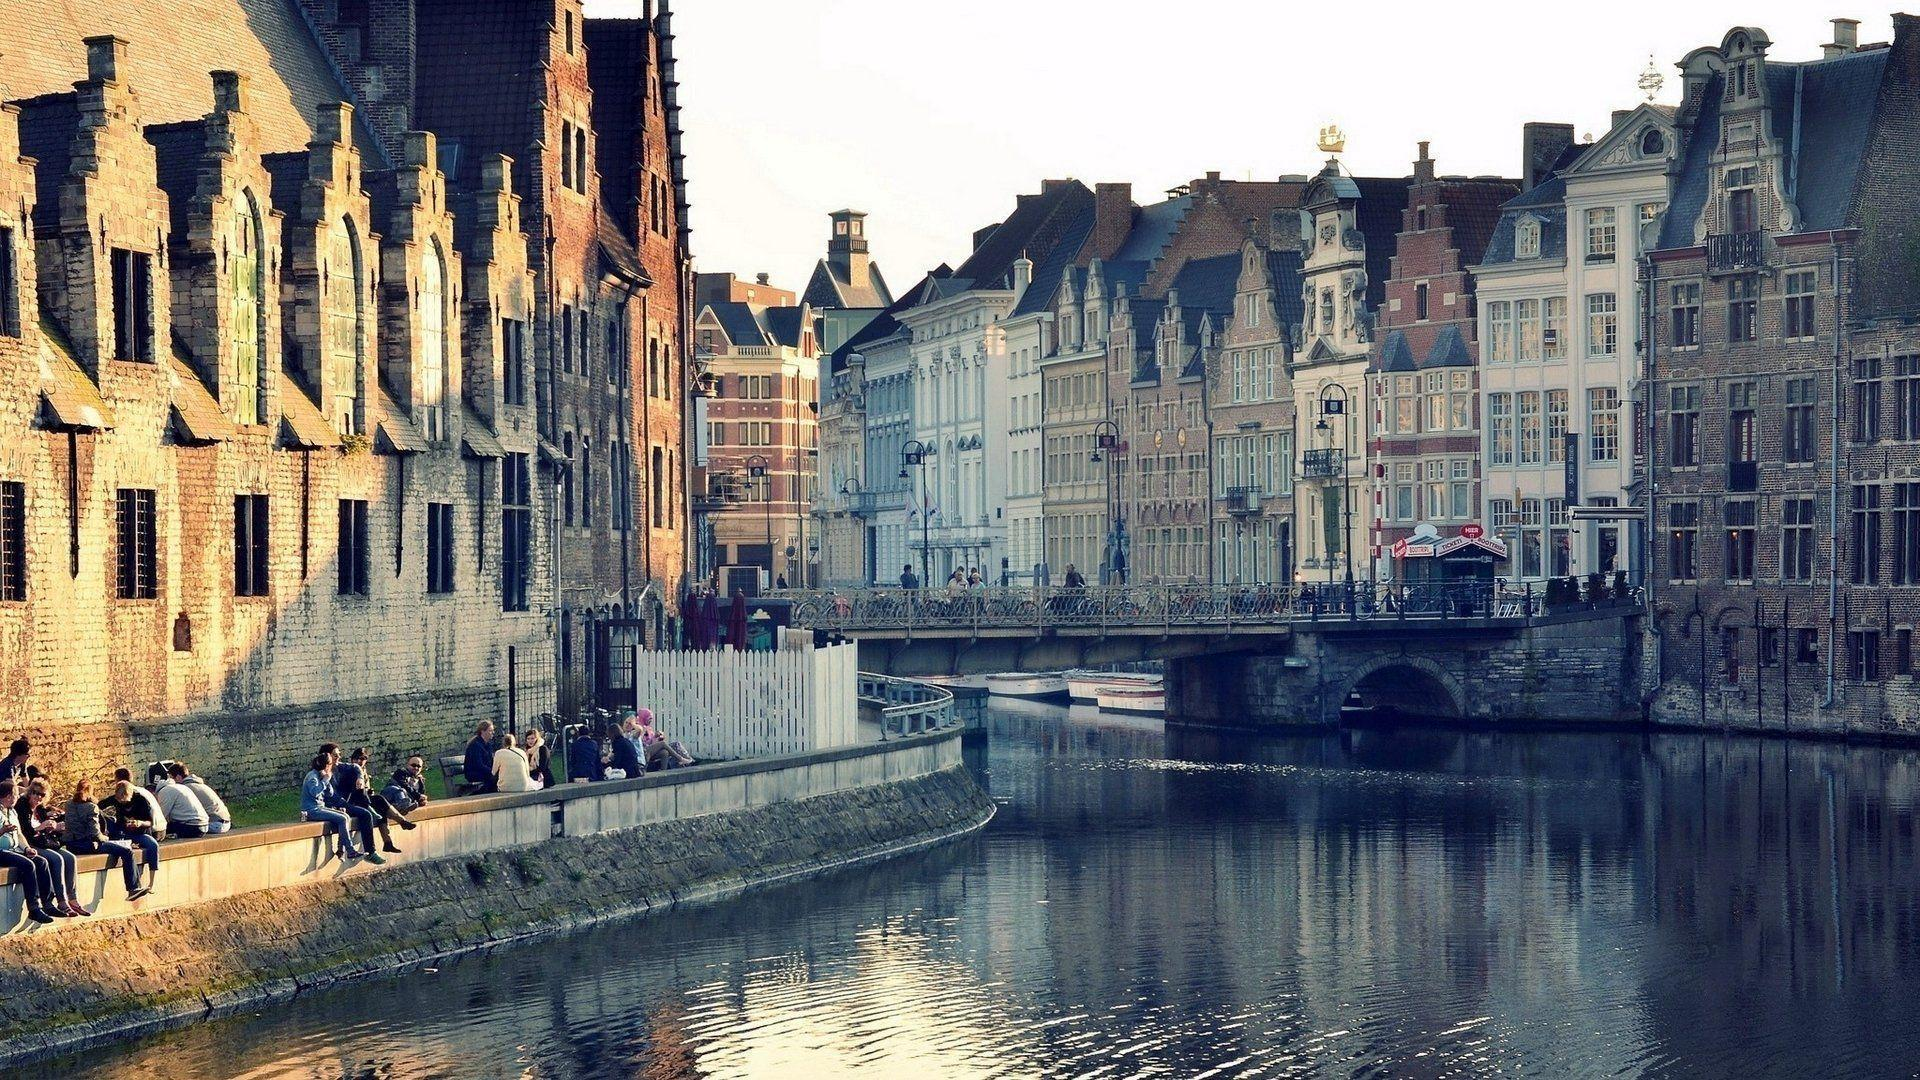 13 Bruges HD Wallpapers | Backgrounds - Wallpaper Abyss